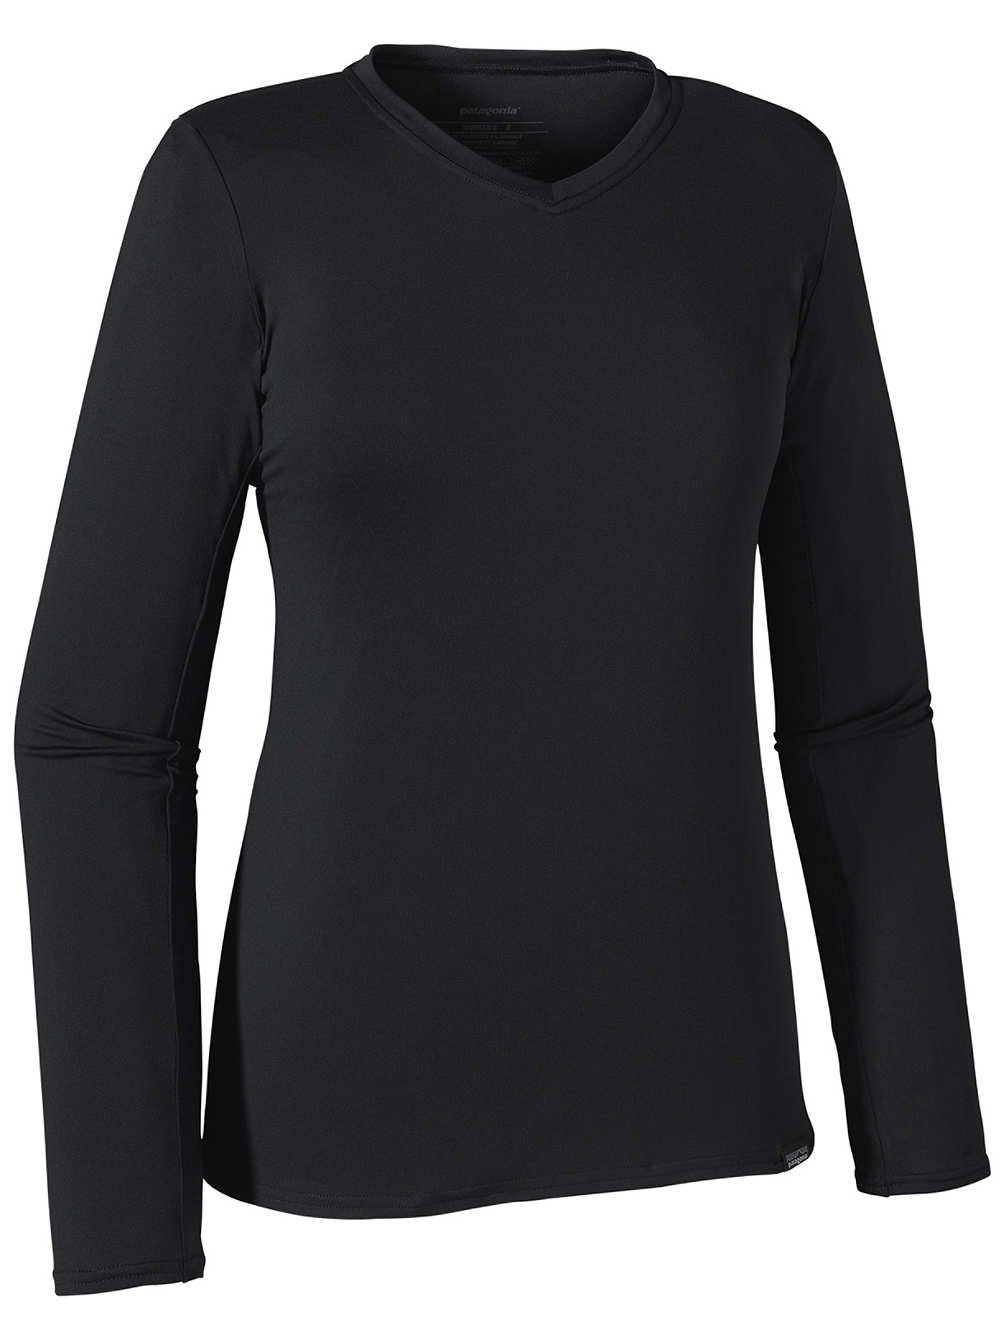 Patagonia Women's Capilene Lightweight Daily Crew Black XX-Small